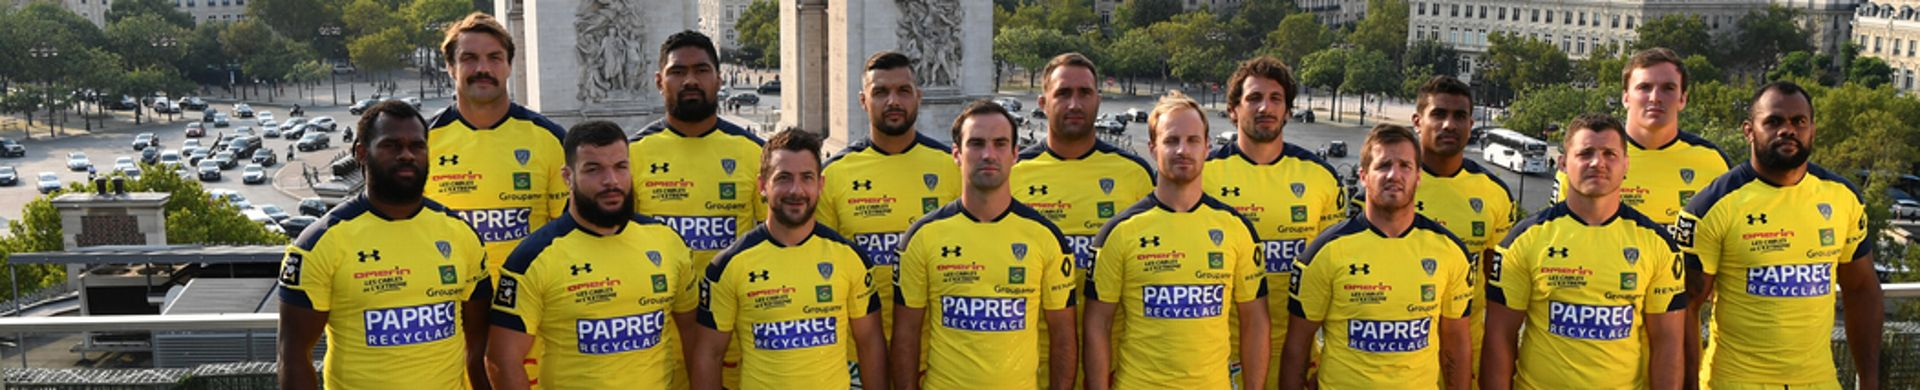 rugby top 14 presentation nouveau maillot 3903551